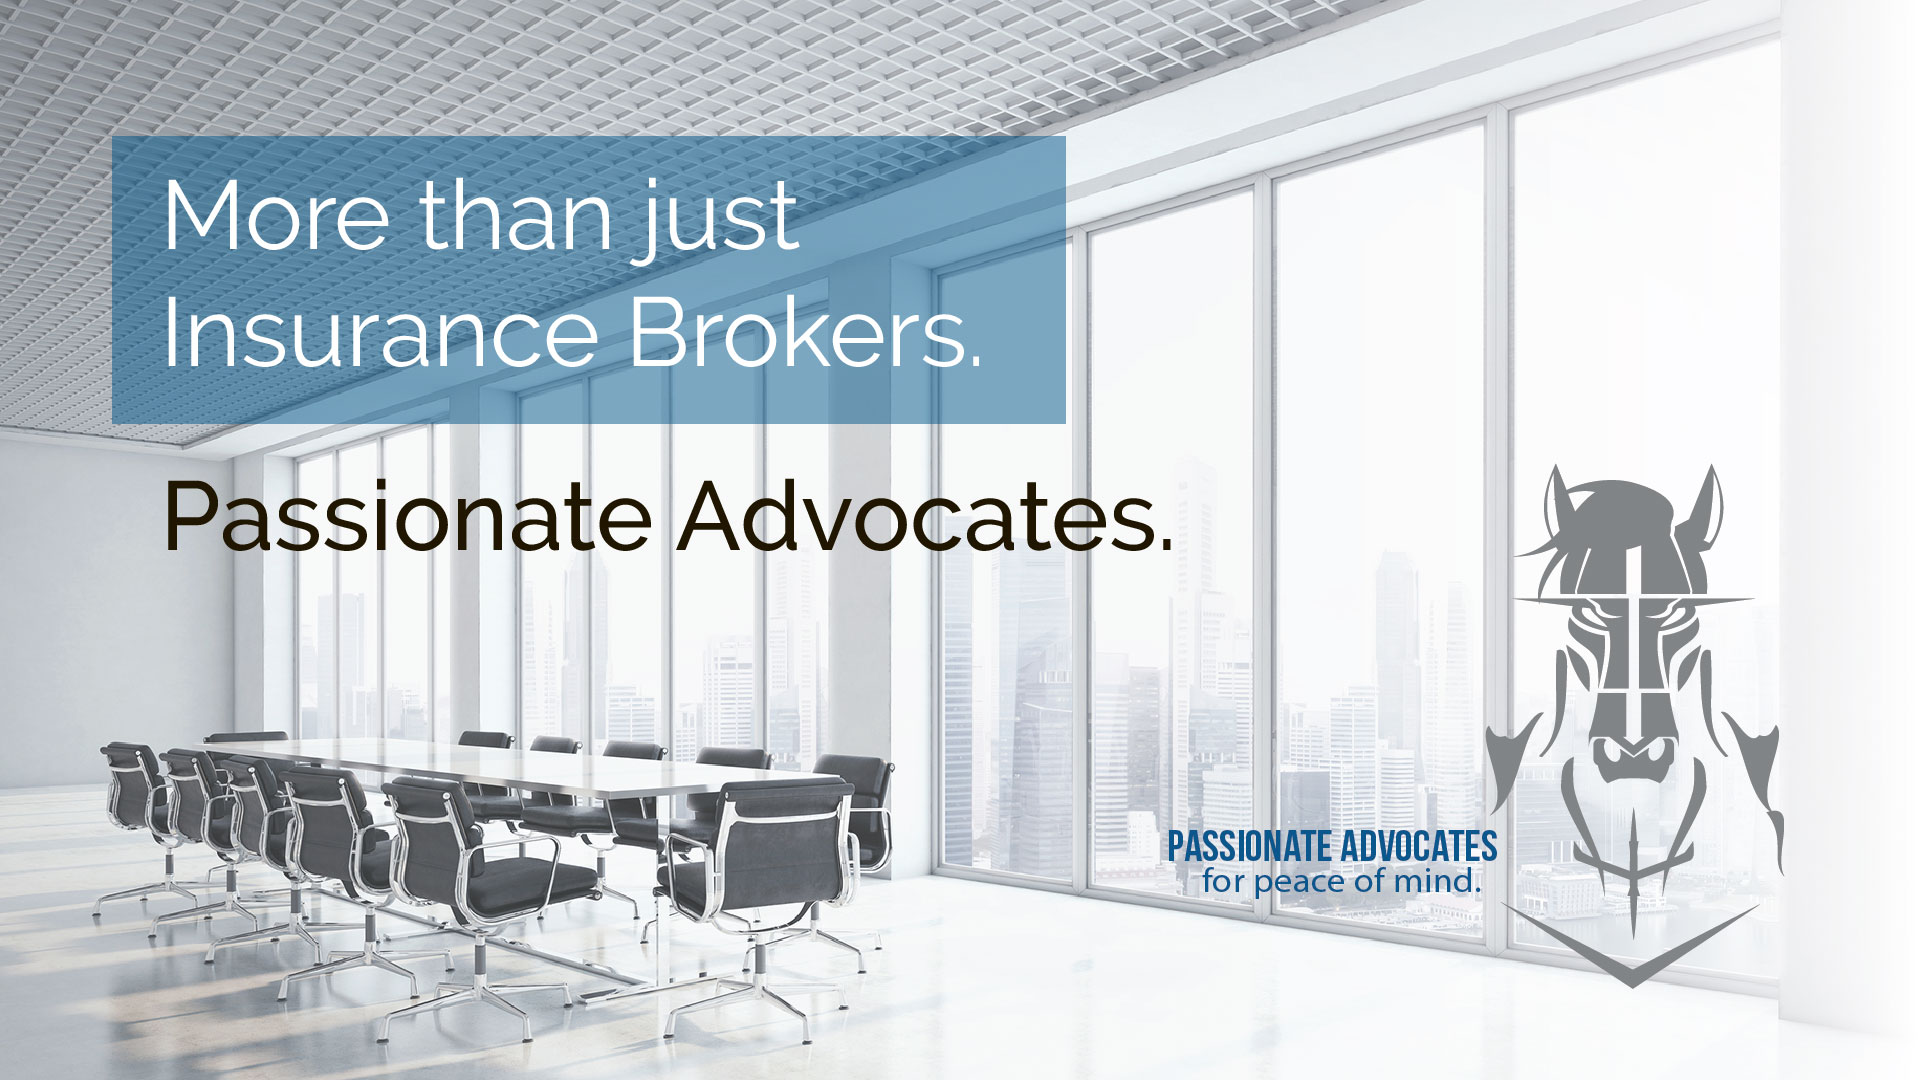 More than just Insurance Brokers. Passionate Advocates.